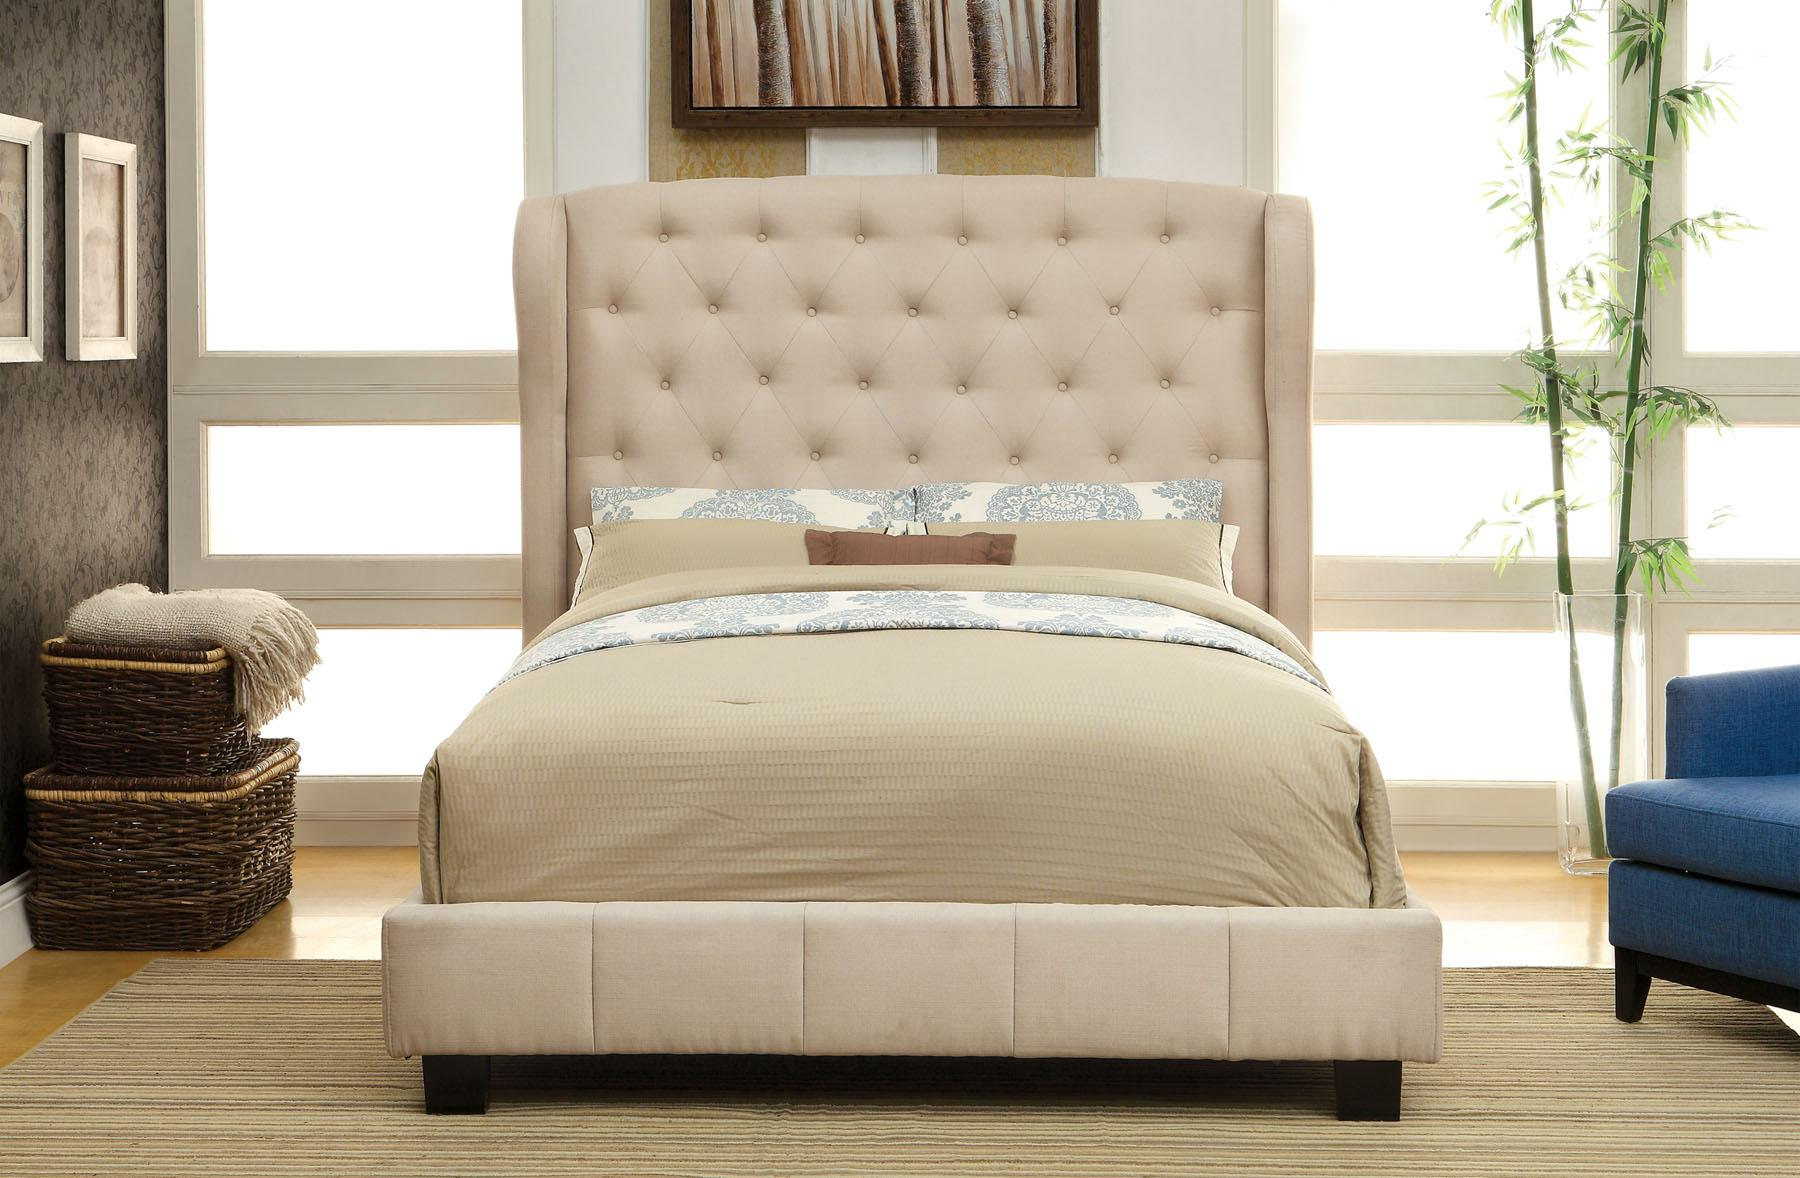 Furniture of America CM7050 Ivory Trufted Bed Queen Del Sol